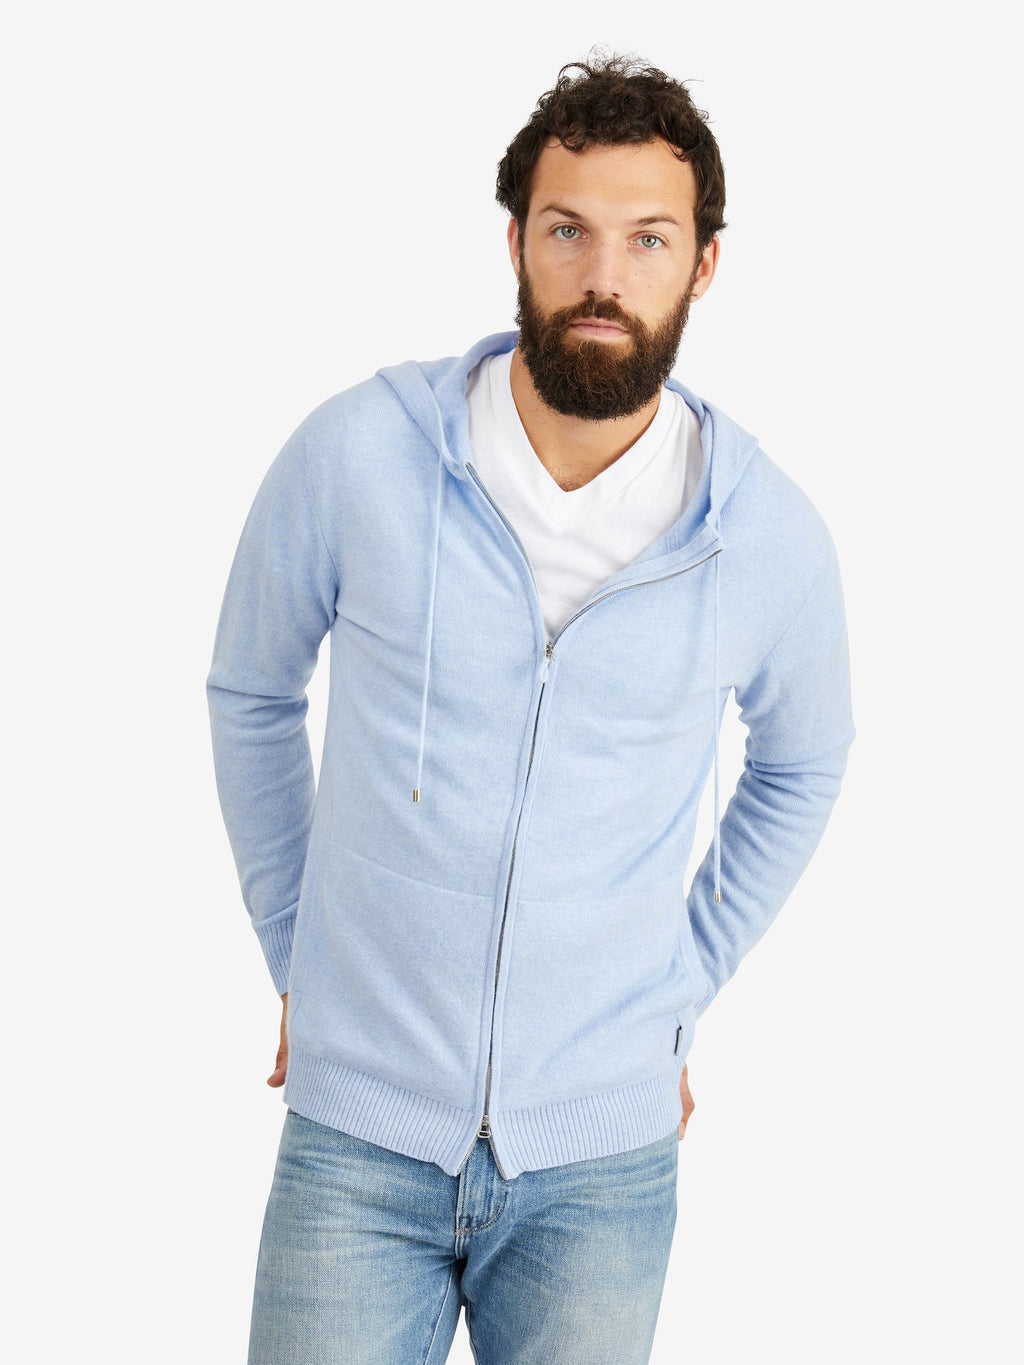 Hank-Perfect-Cashmere-Latham-Zip-Hoodie